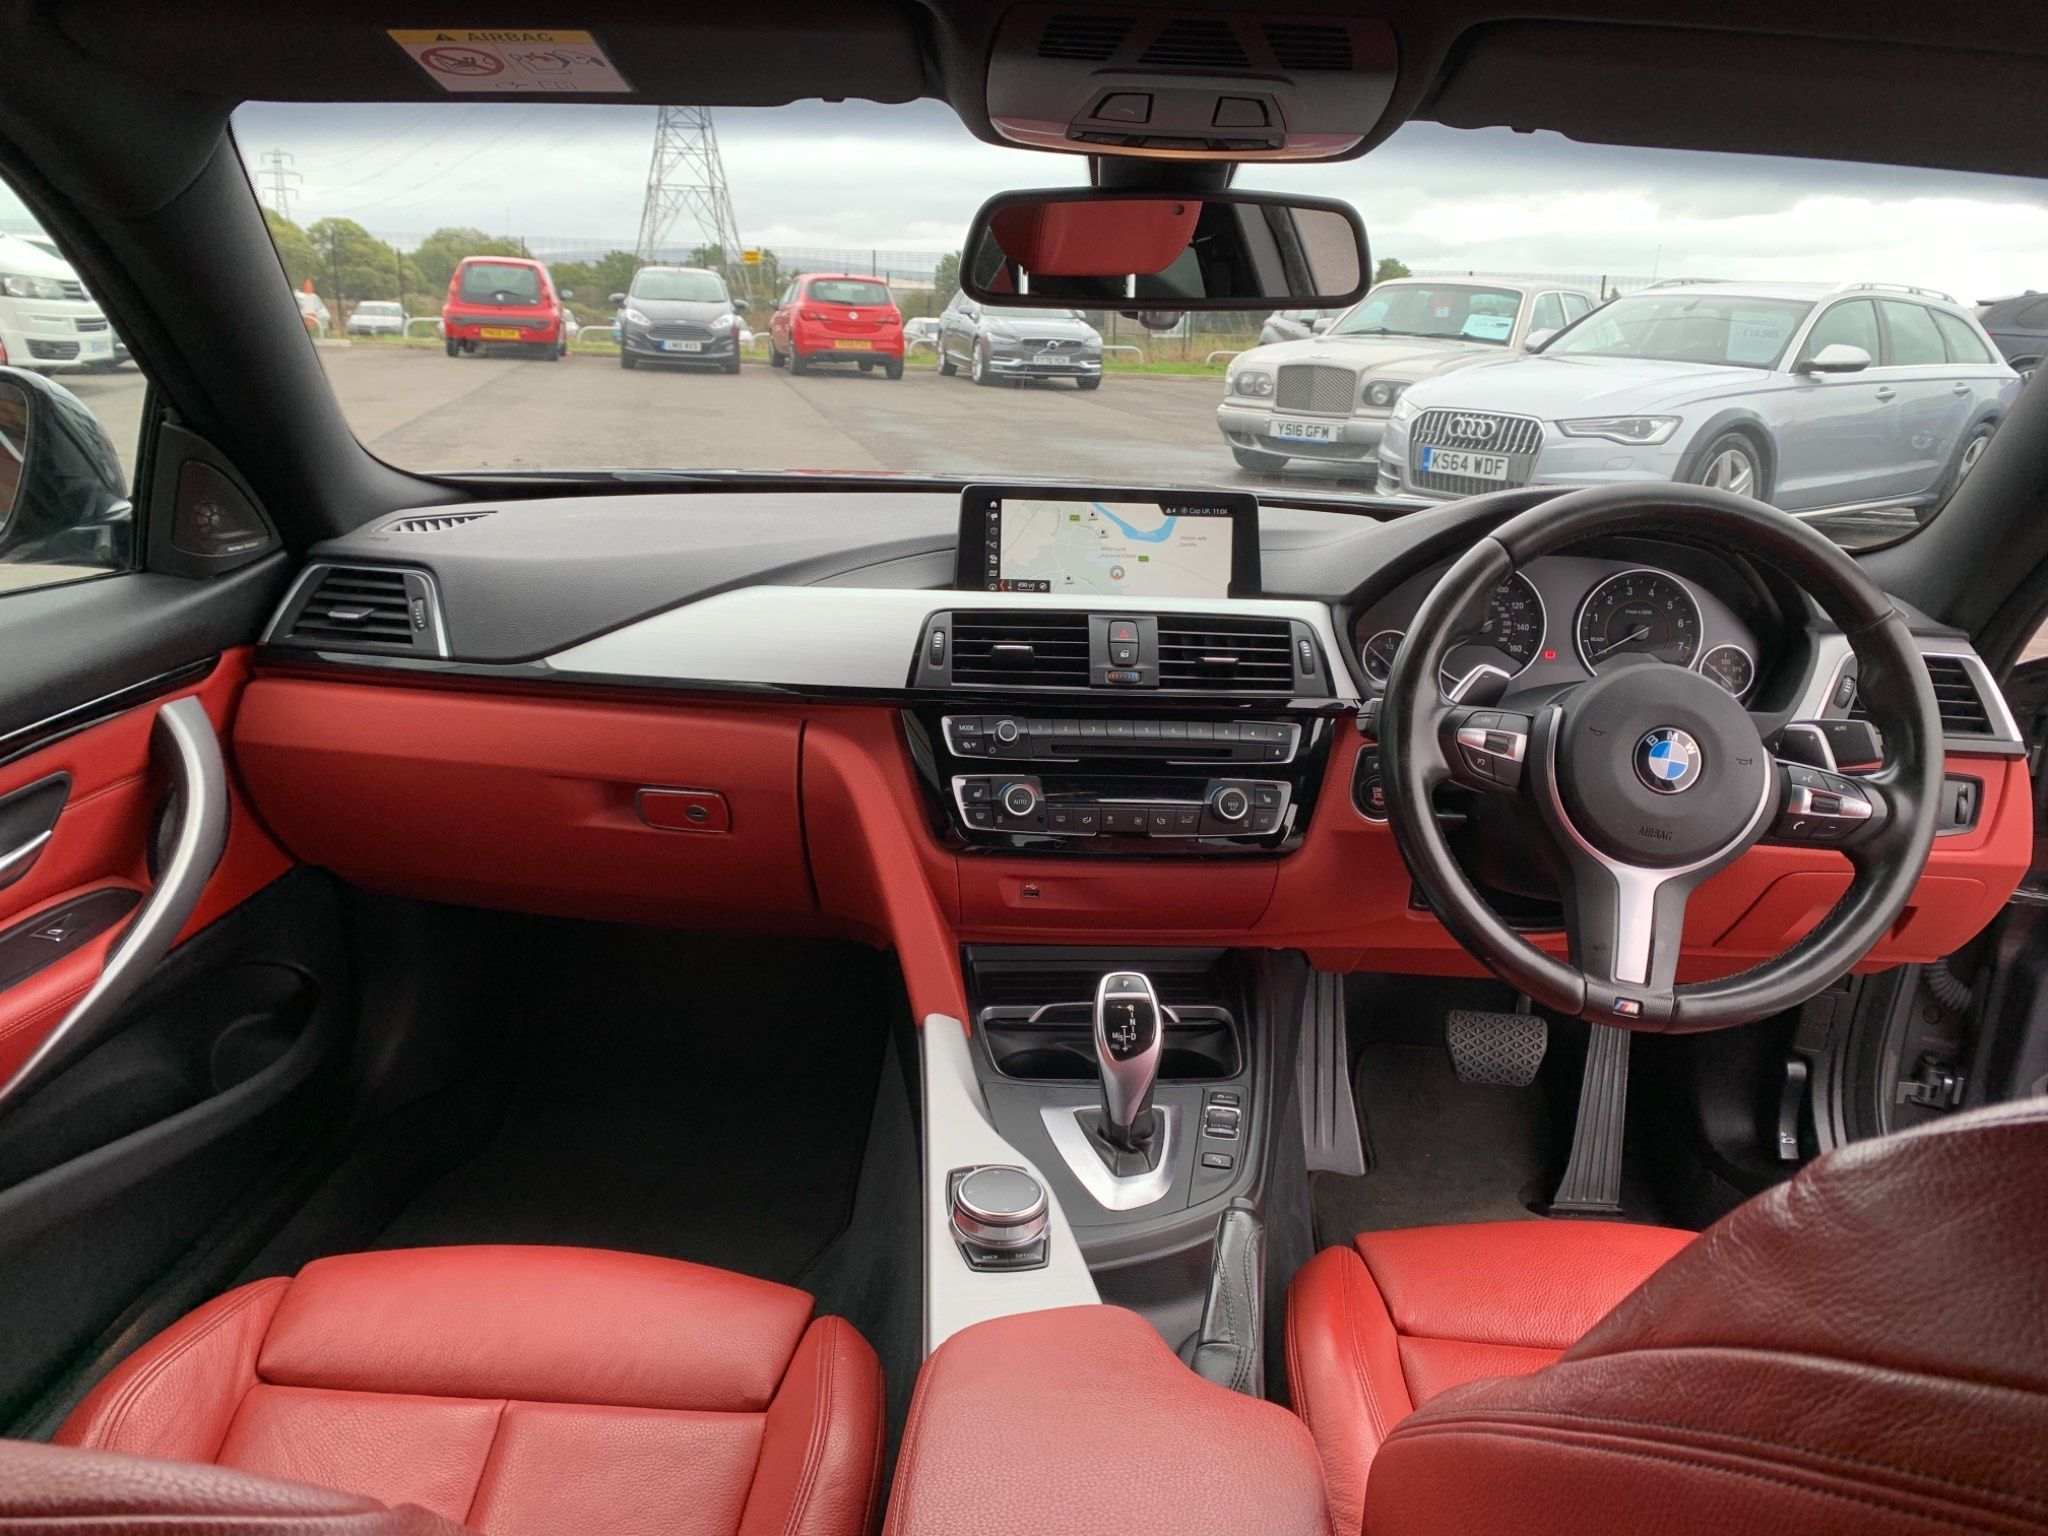 BMW 4 Series Images